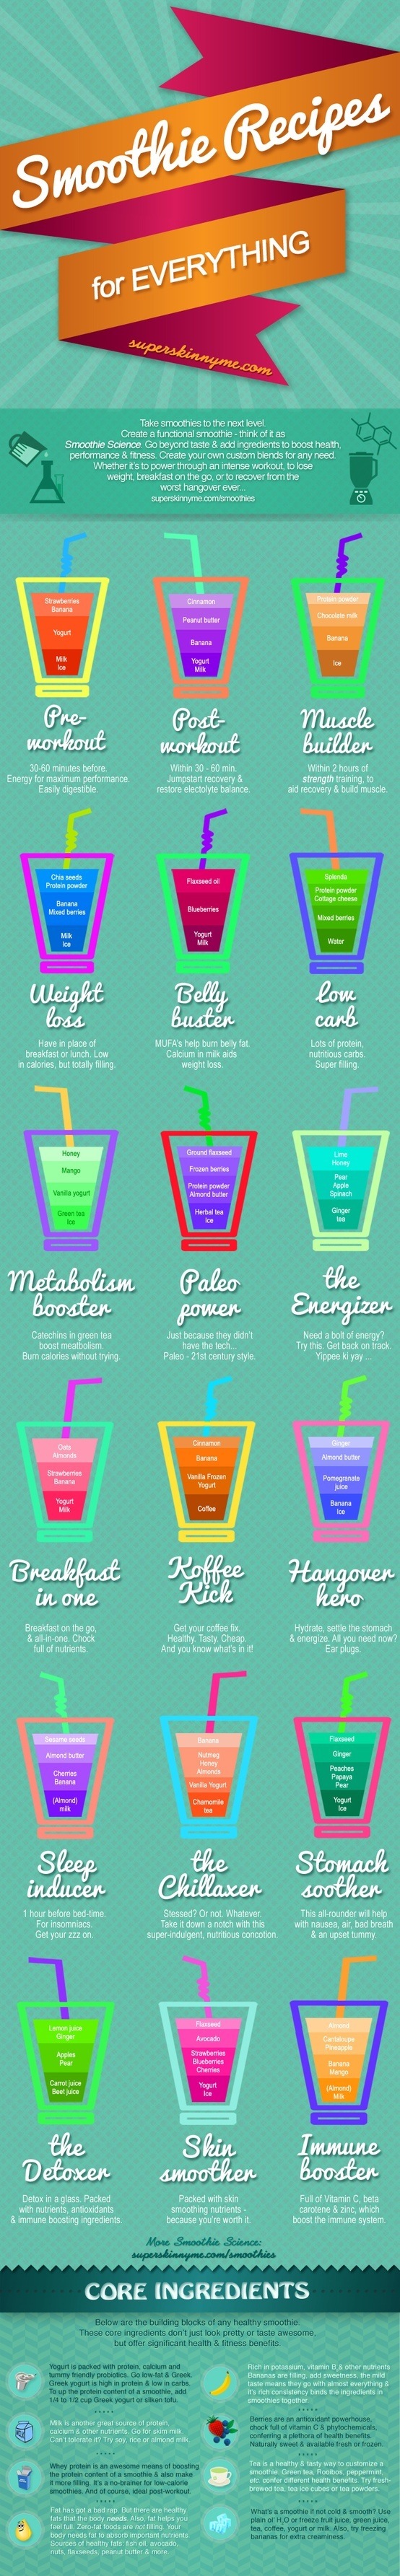 smoothies for everything